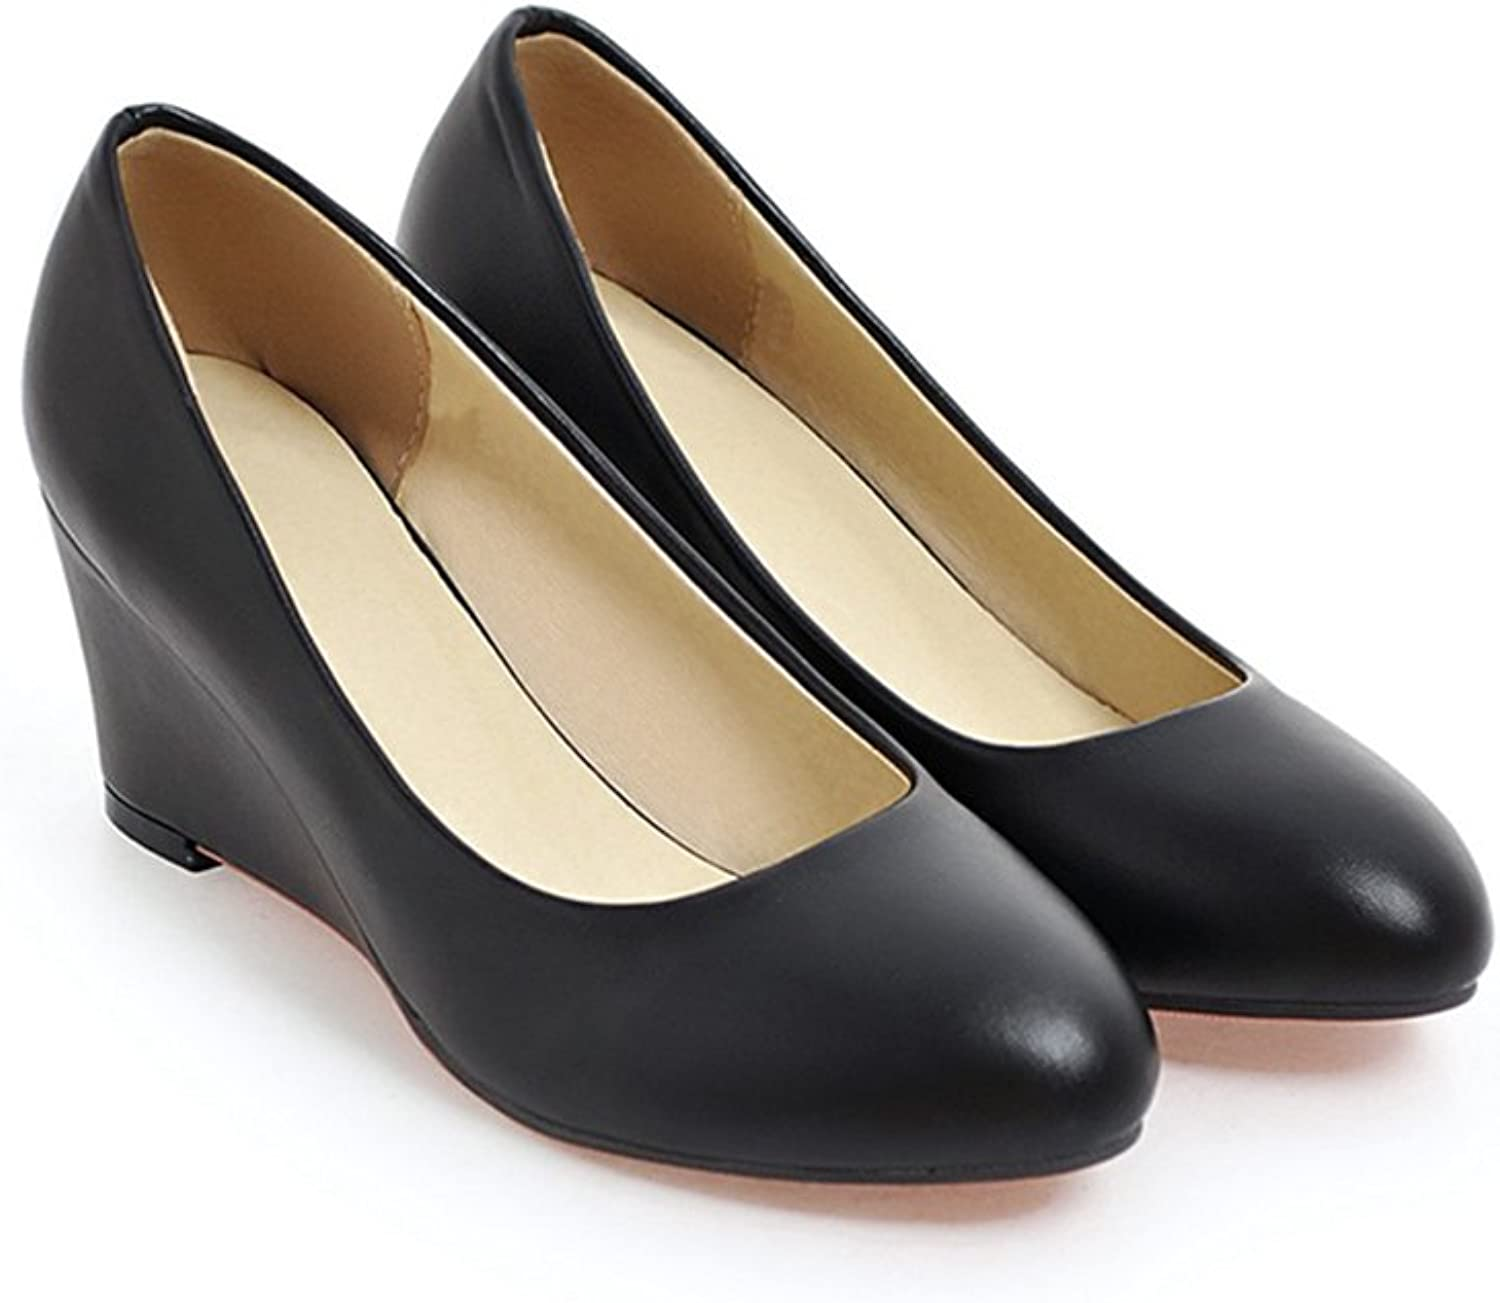 YUBIN Summer Pointed Single shoes Female Korean High-Heeled shoes Slope with Work shoes Size Code Nurse Pregnant Women shoes Casual shoes (color   Black, Size   38)